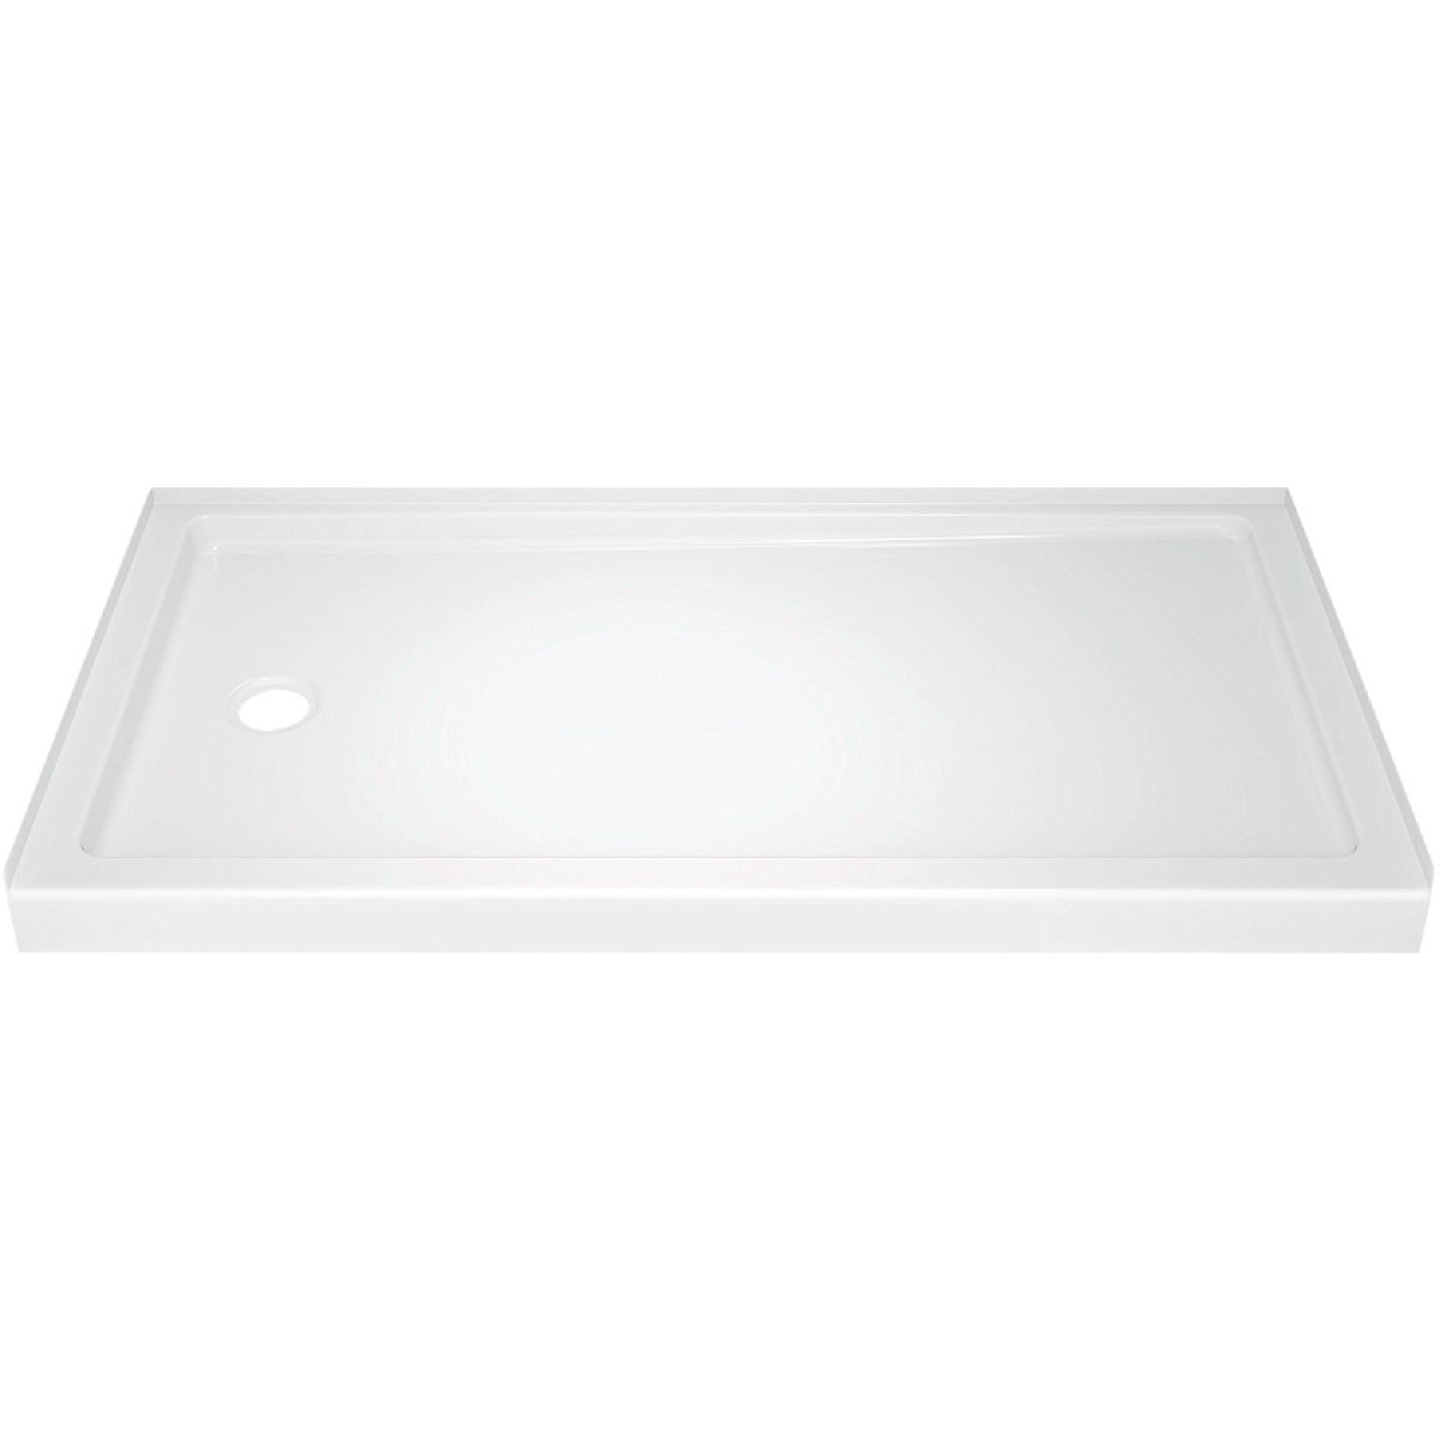 Delta Classic 400 60 In. L x 32 In. D Left Drain Shower Floor & Base in White Image 1